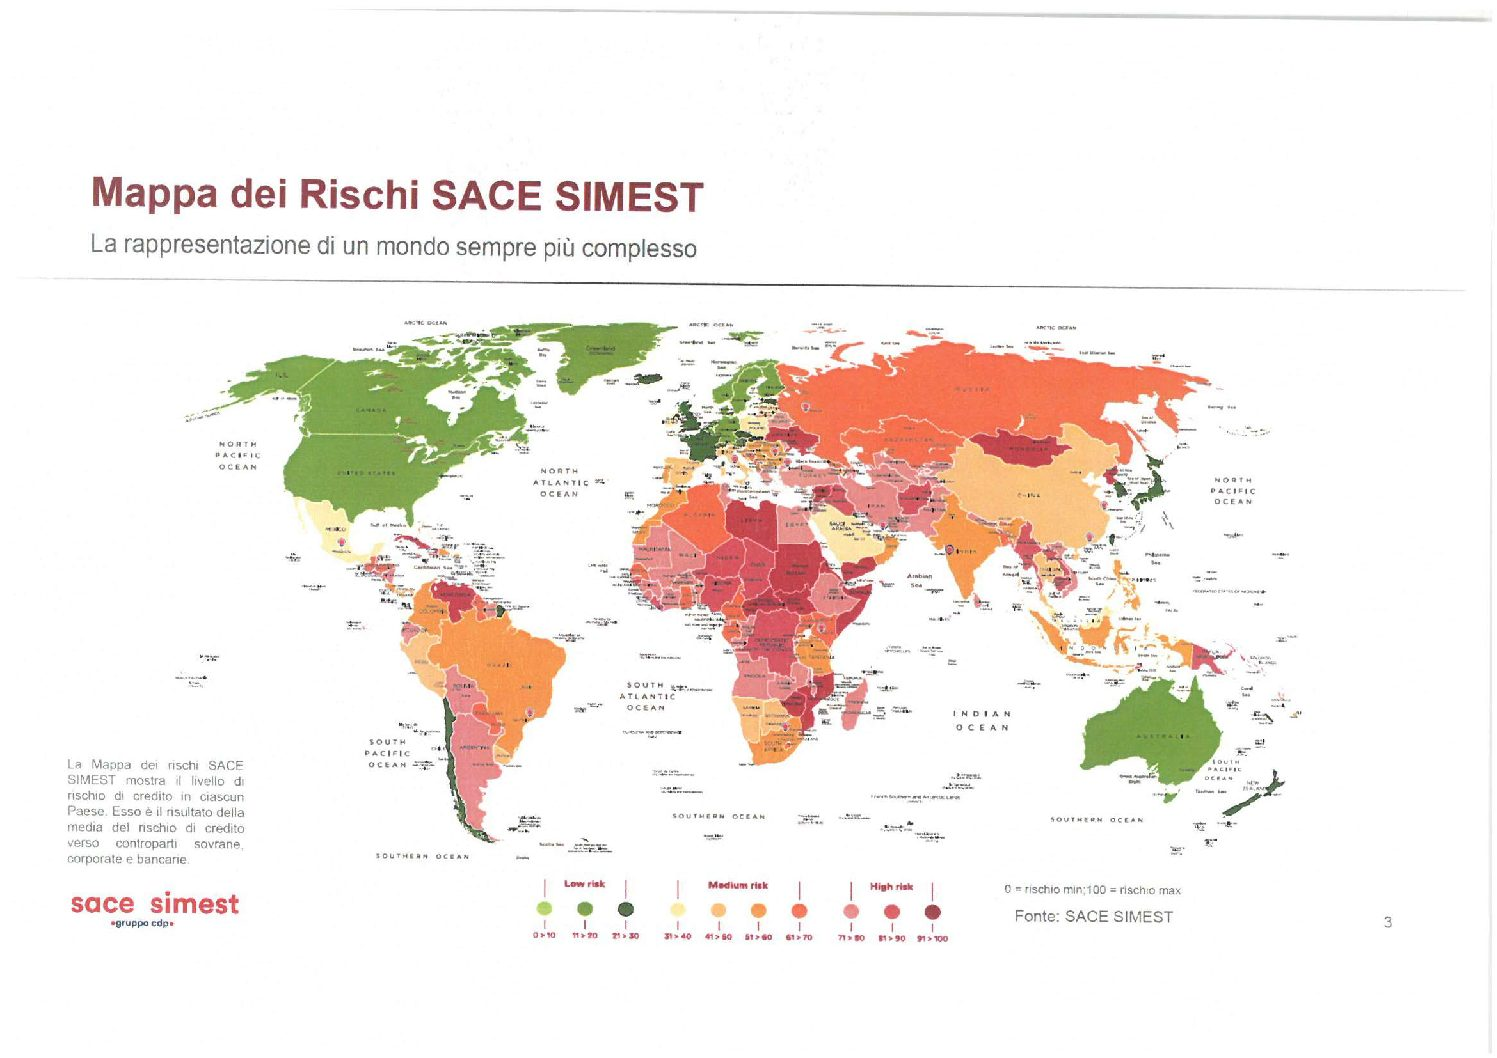 Economia mondiale 2019: la Risk Map secondo SACE